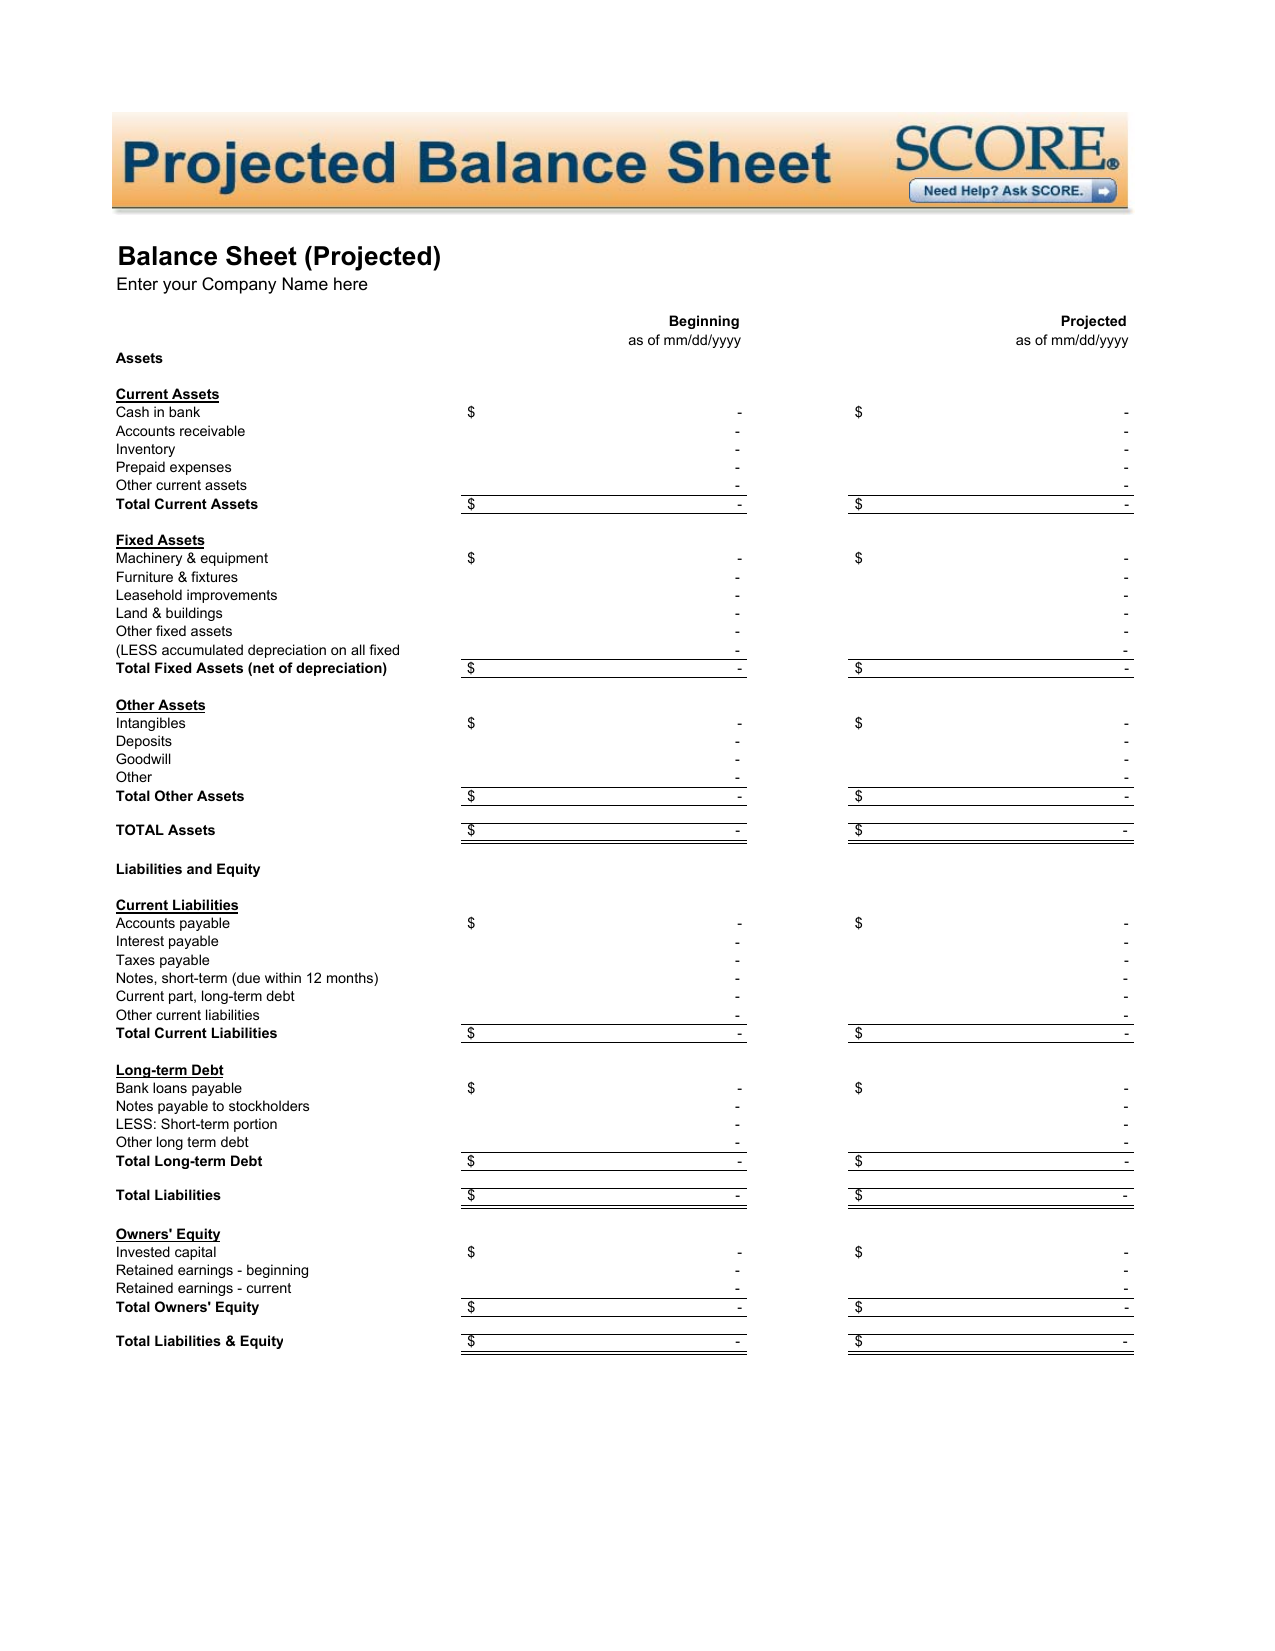 download projected balance sheet template excel pdf rtf word